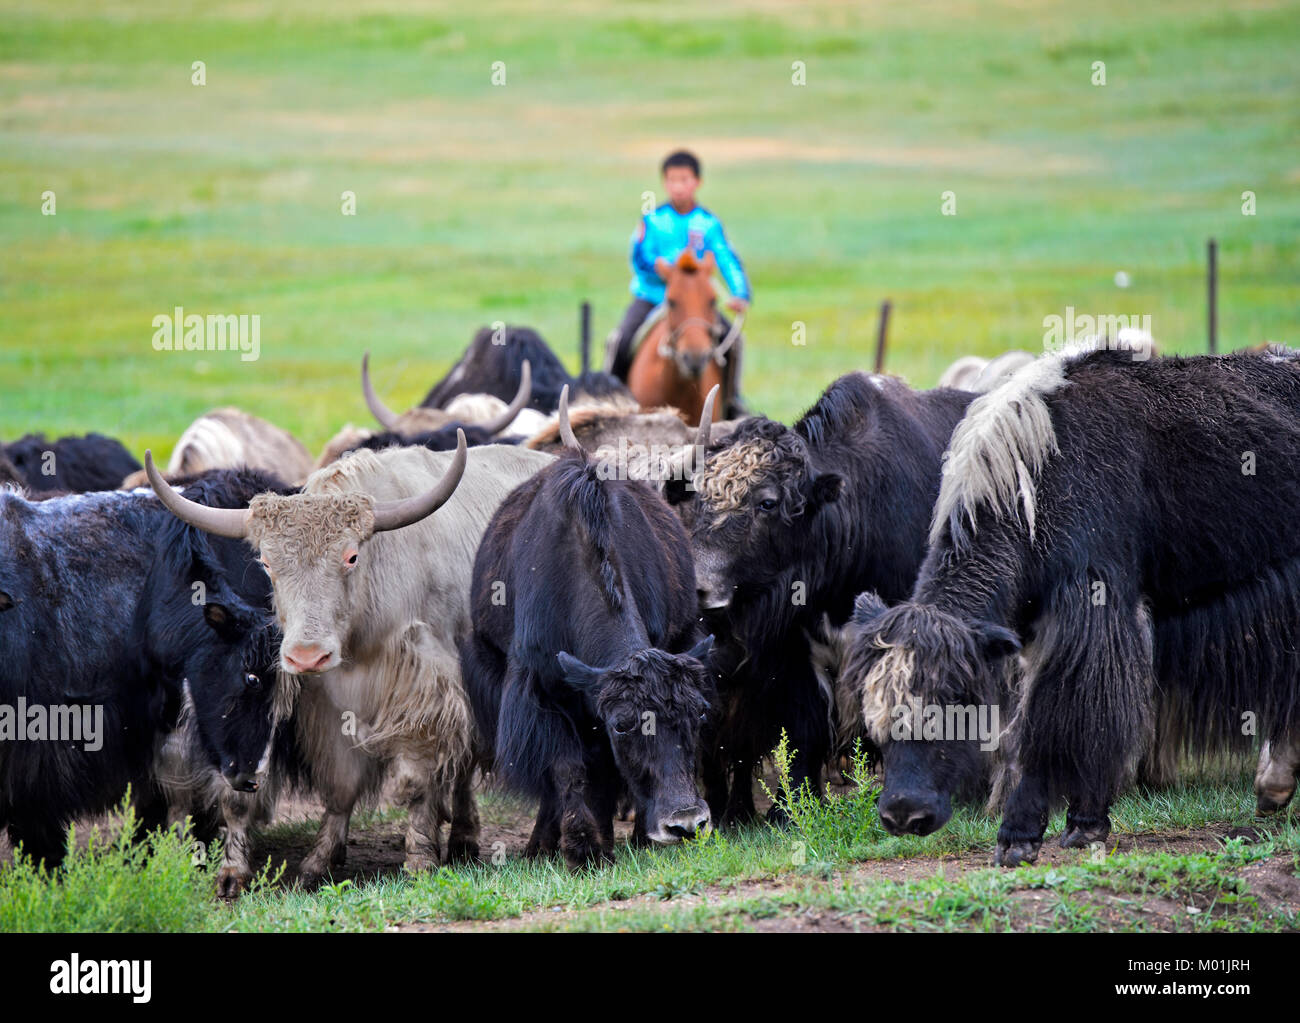 Mounted boy as shepard of a herd of Yaks, Gorkhi-Terelj National Park, Mongolia - Stock Image